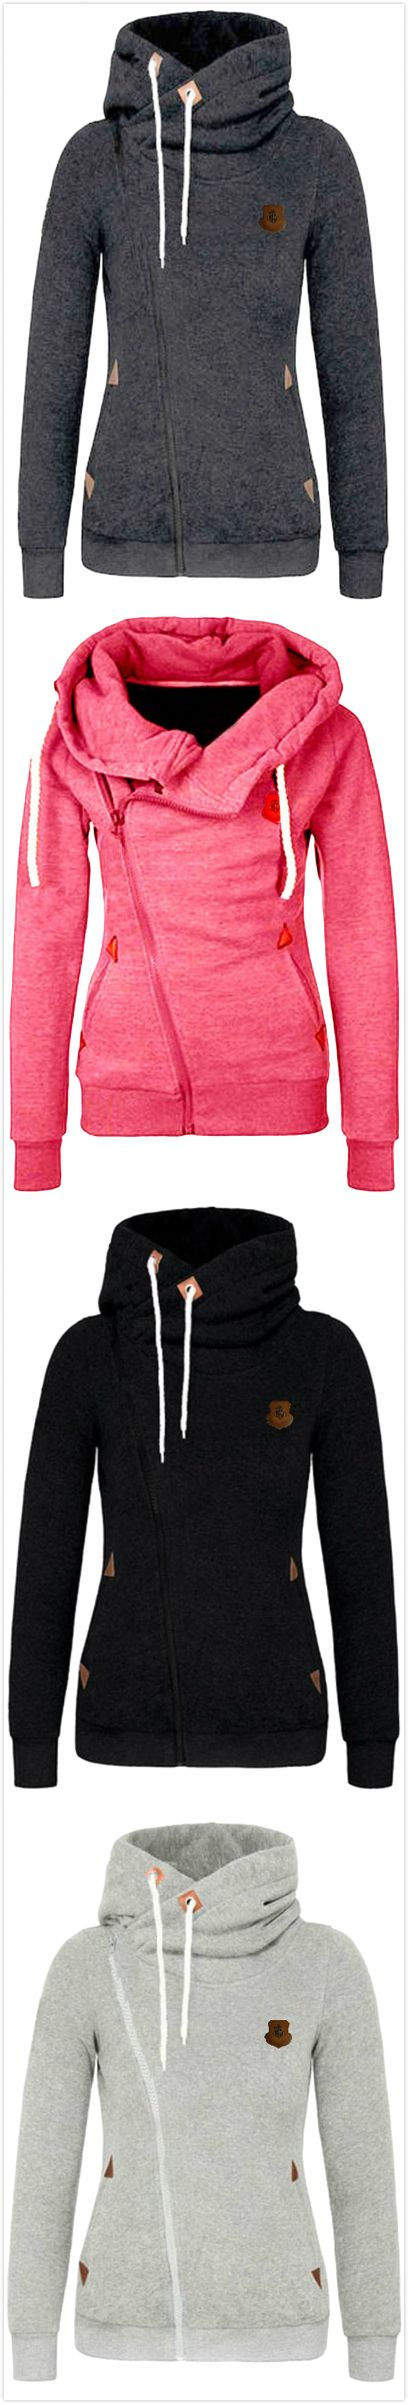 The Fashion Sweatshirt features turtleneck and drawstring design.ONLY $20.9! You deserve it at OASAP.COM , free shipping! OASAP.COM ,hot sale!